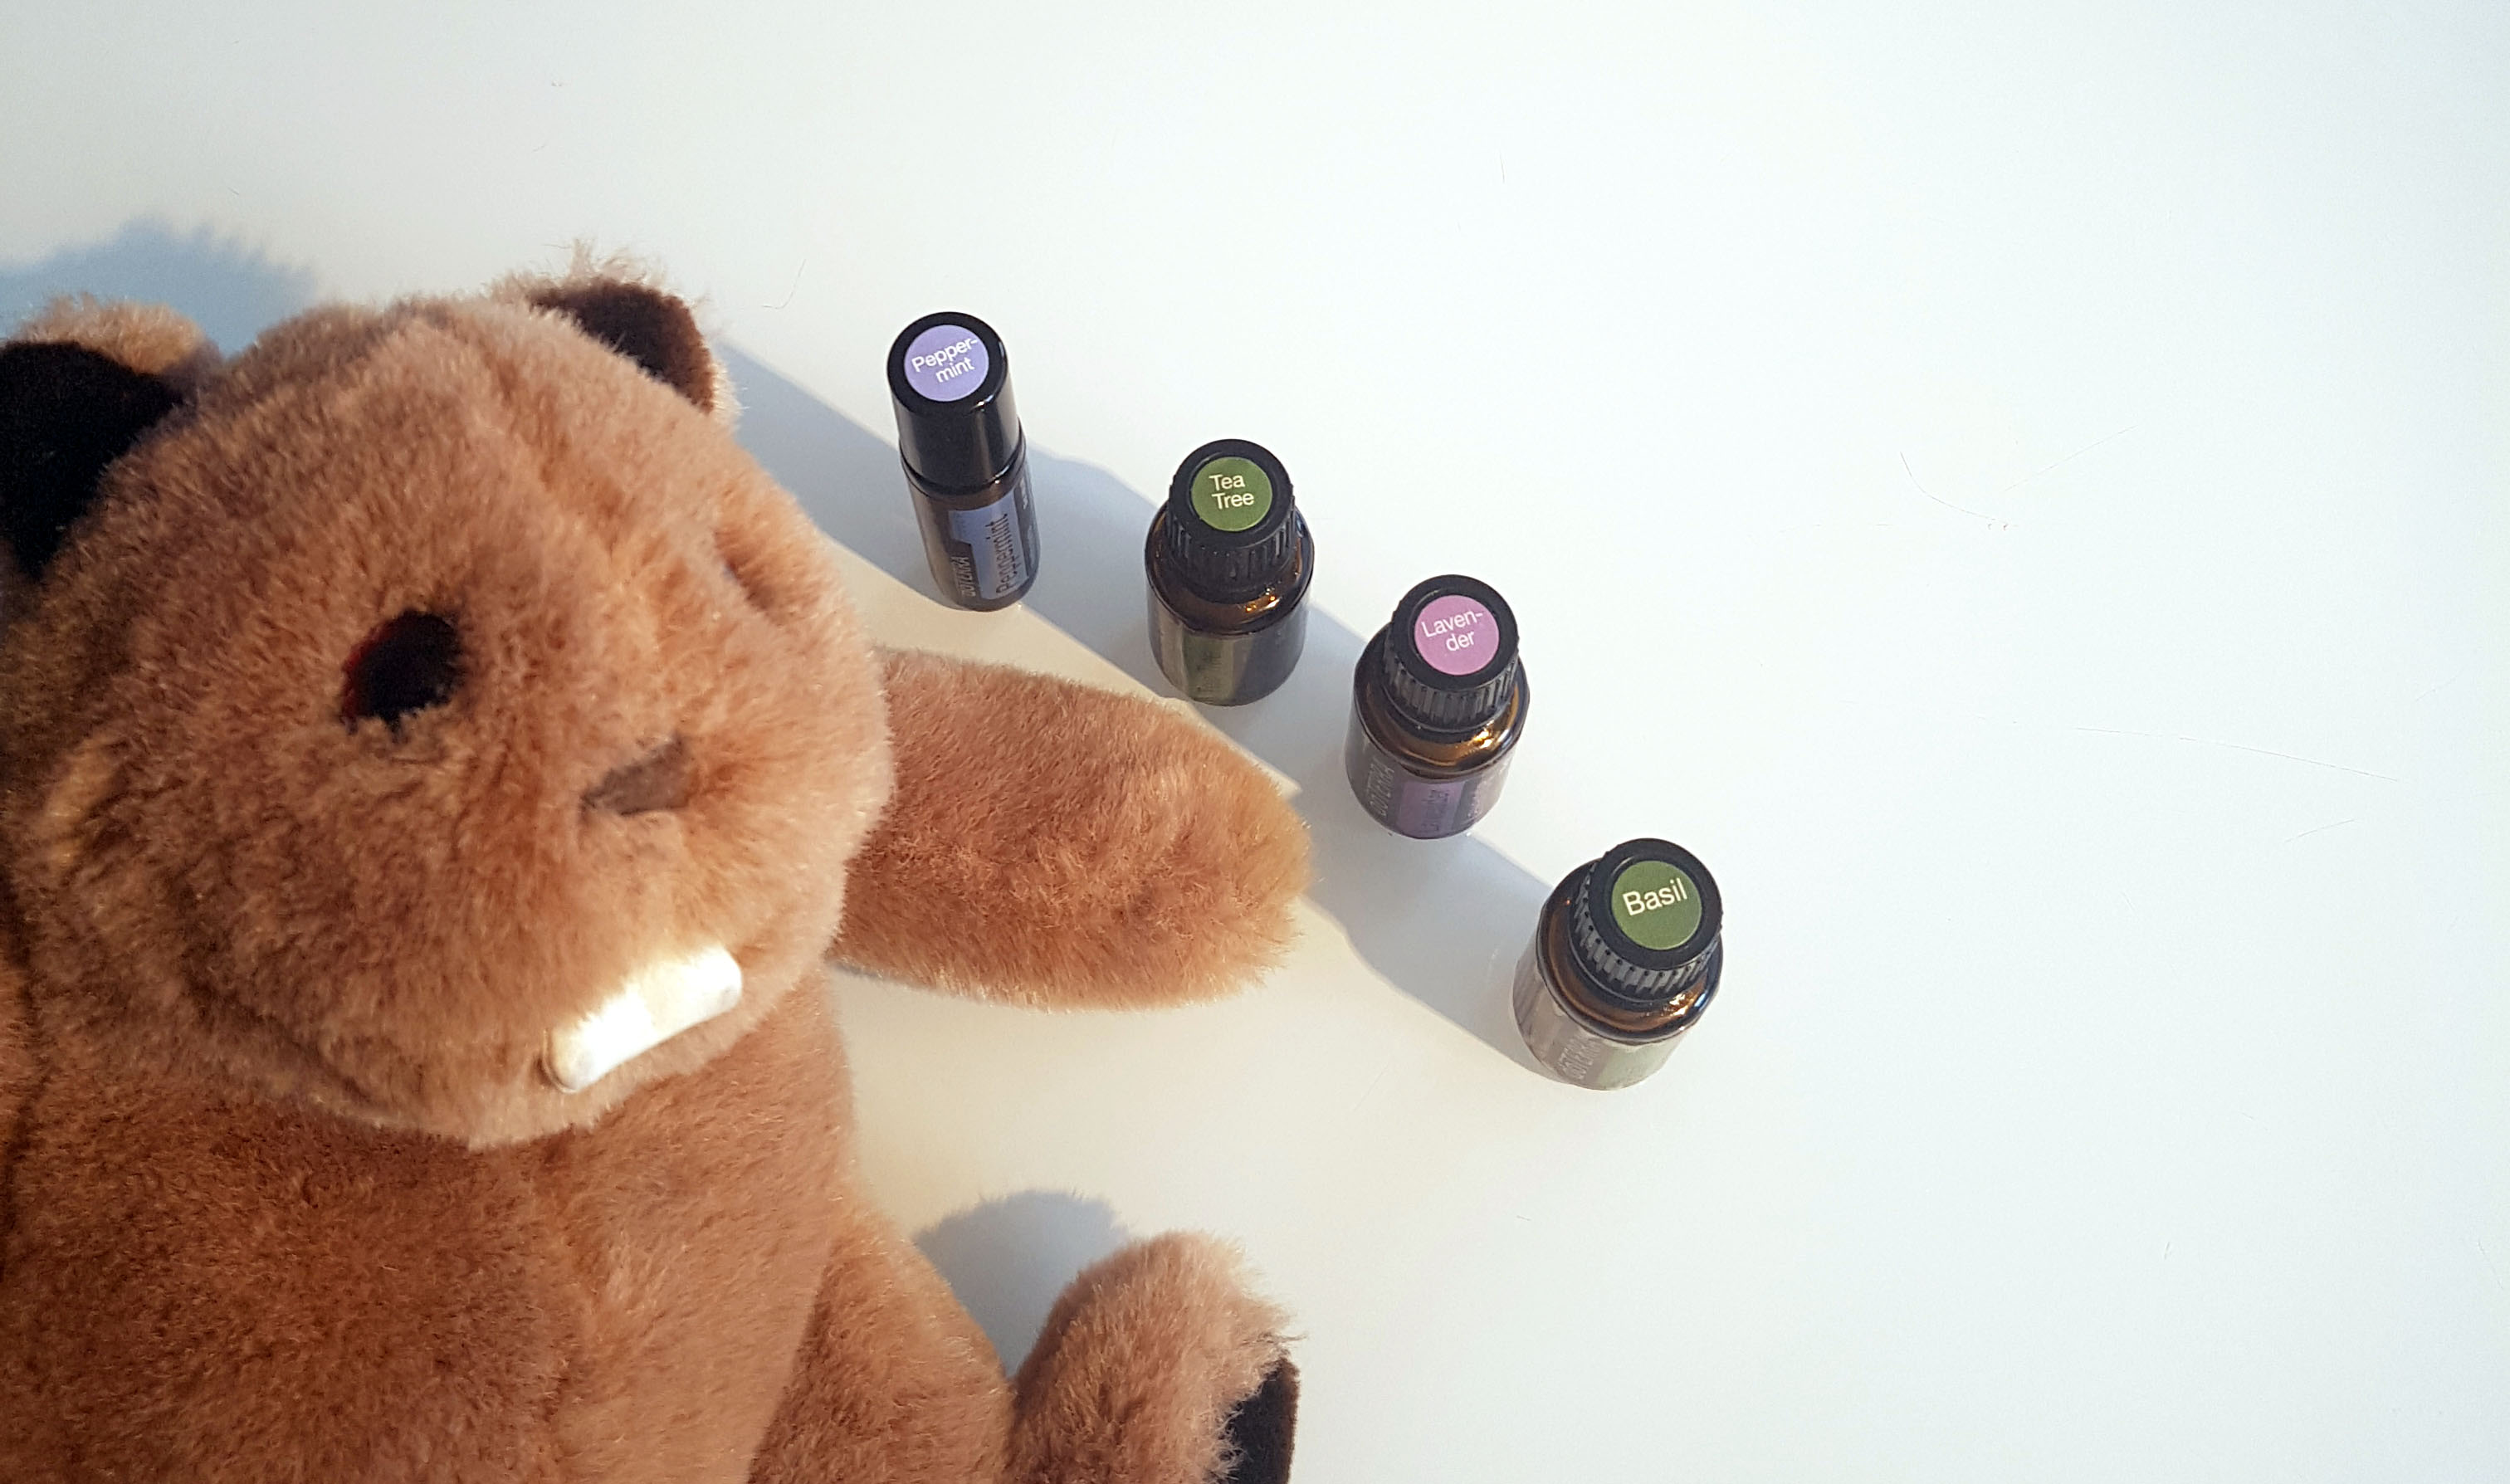 Stuffed animal and bottles of peppermint, tea tree, lavender and basil essential oils.